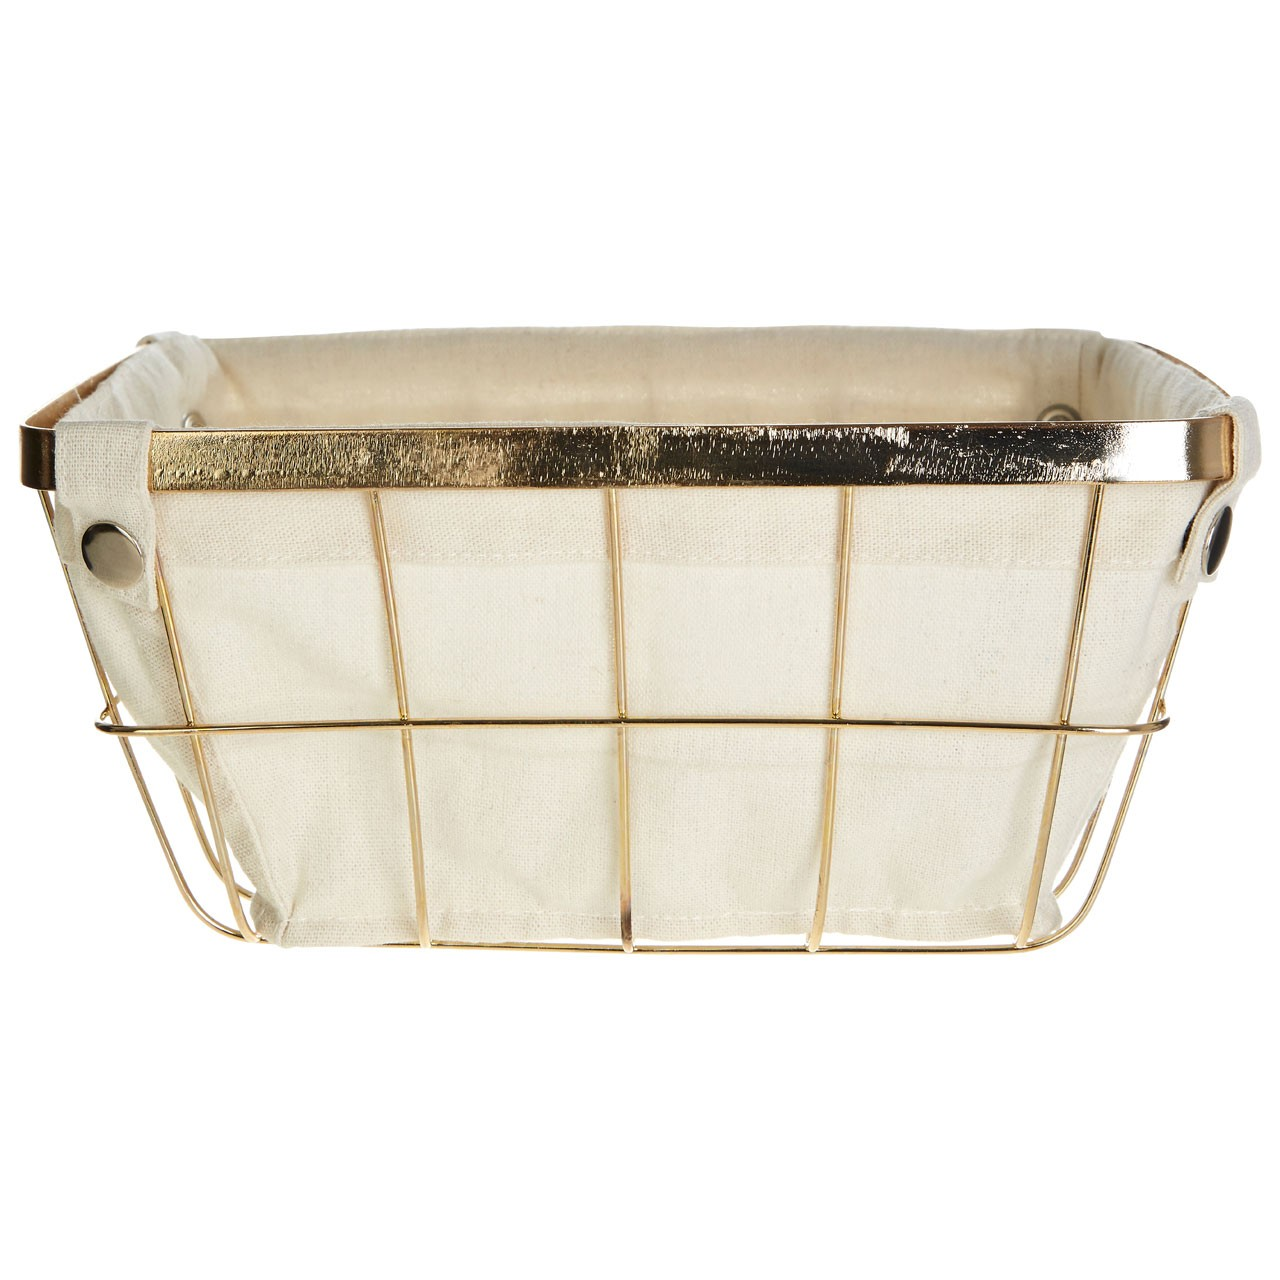 Prime Furnishing Square Storage Basket / Gold Plated Iron Wire